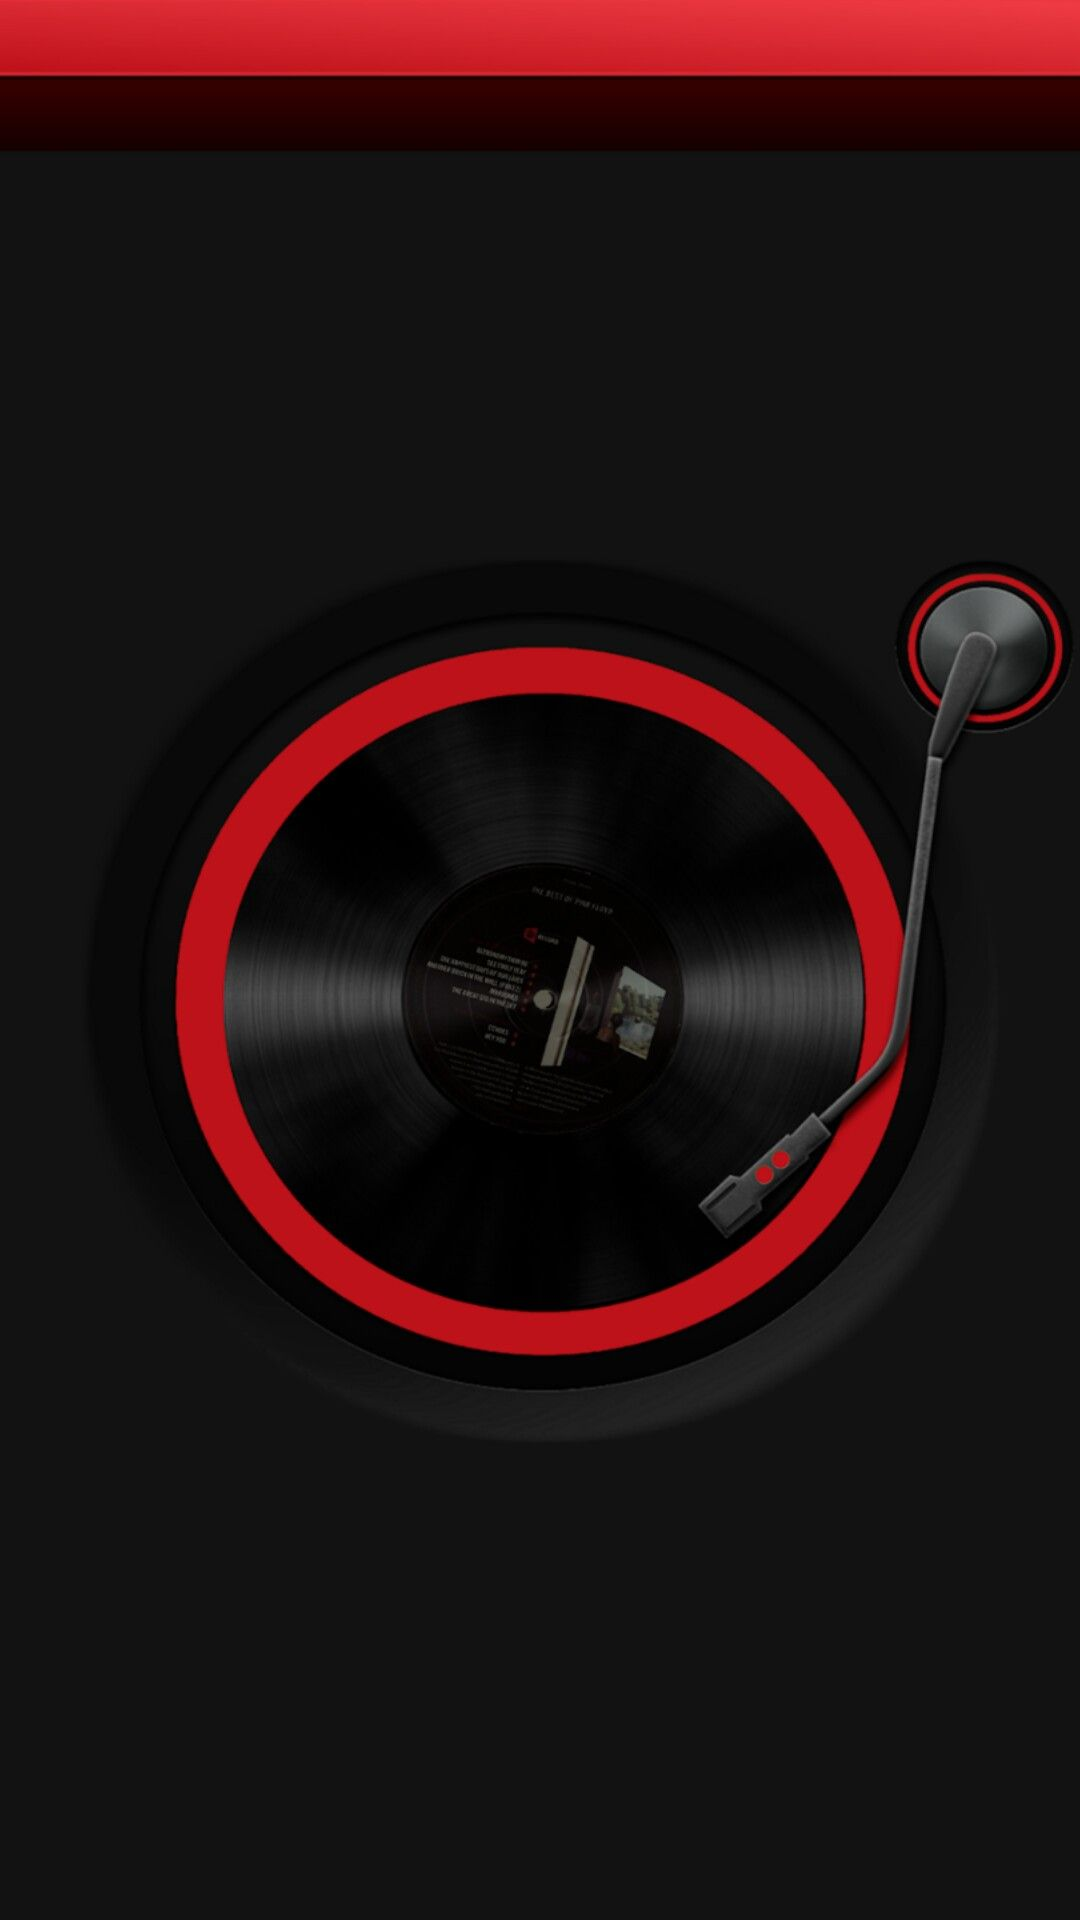 Red And Black Record Wallpaper